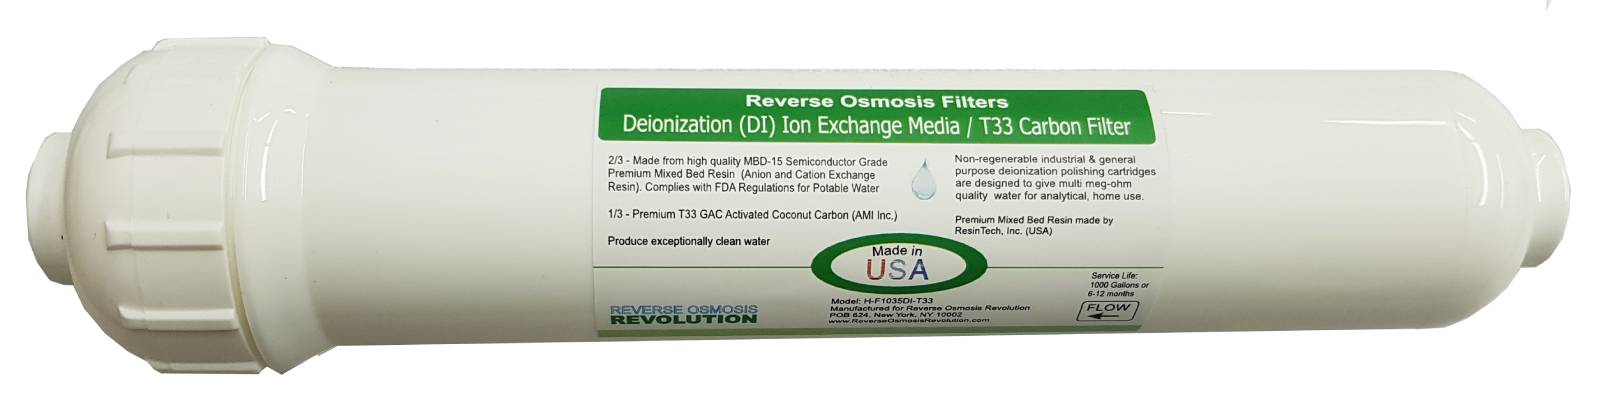 "Extra Capacity (11""x2.5"") Premium DI Ion Exchange Filter (0PPM), (2/3) and post GAC Carbon T33 (1/3)"